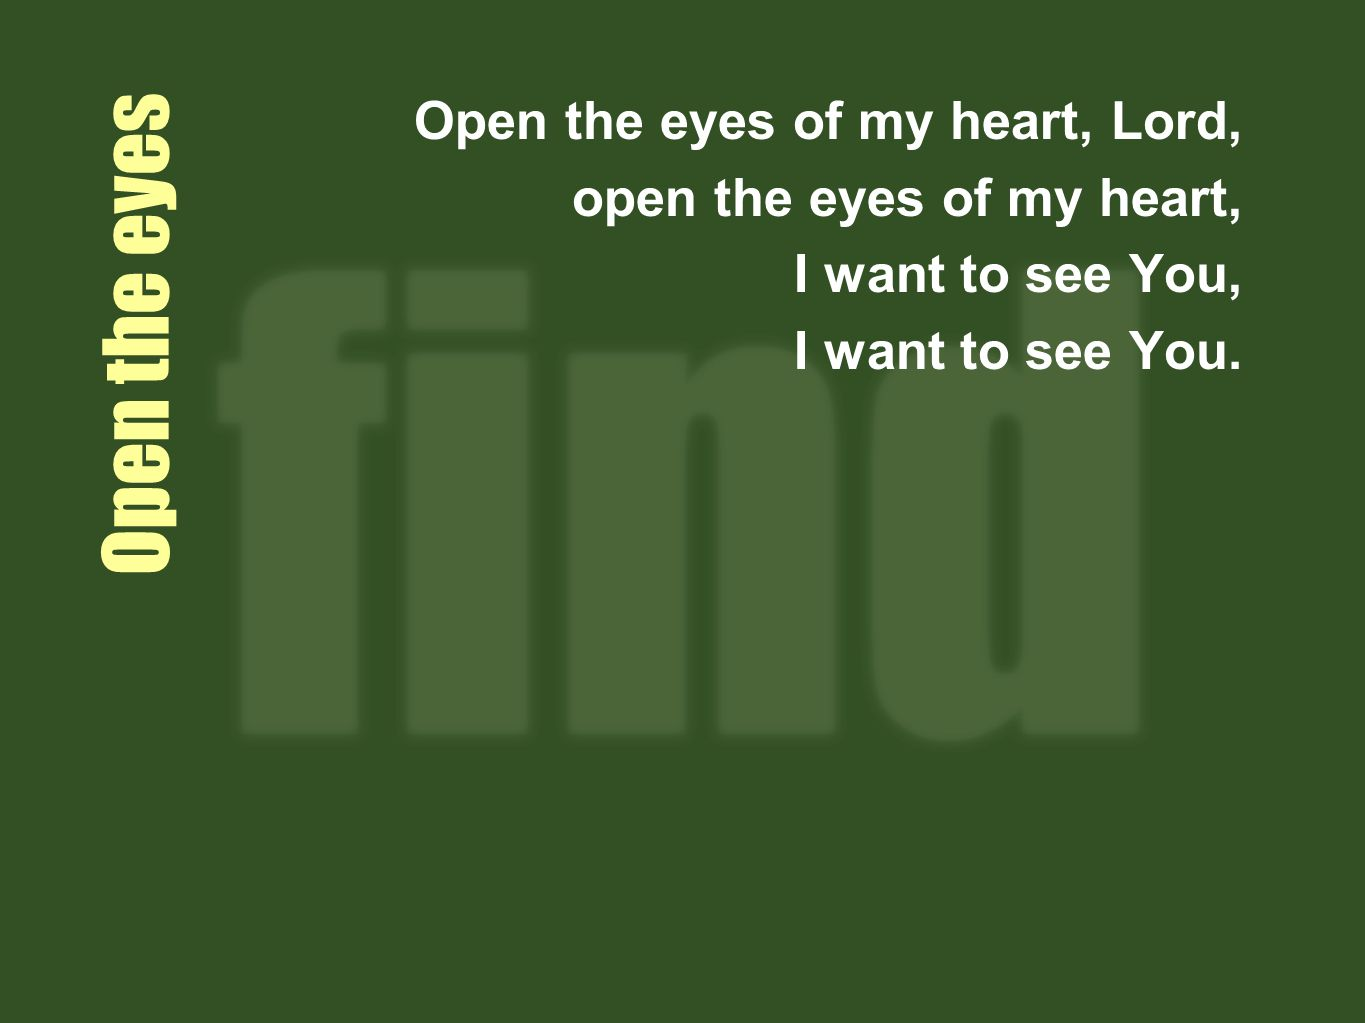 Open the eyes Open the eyes of my heart, Lord, open the eyes of my heart, I want to see You, I want to see You.